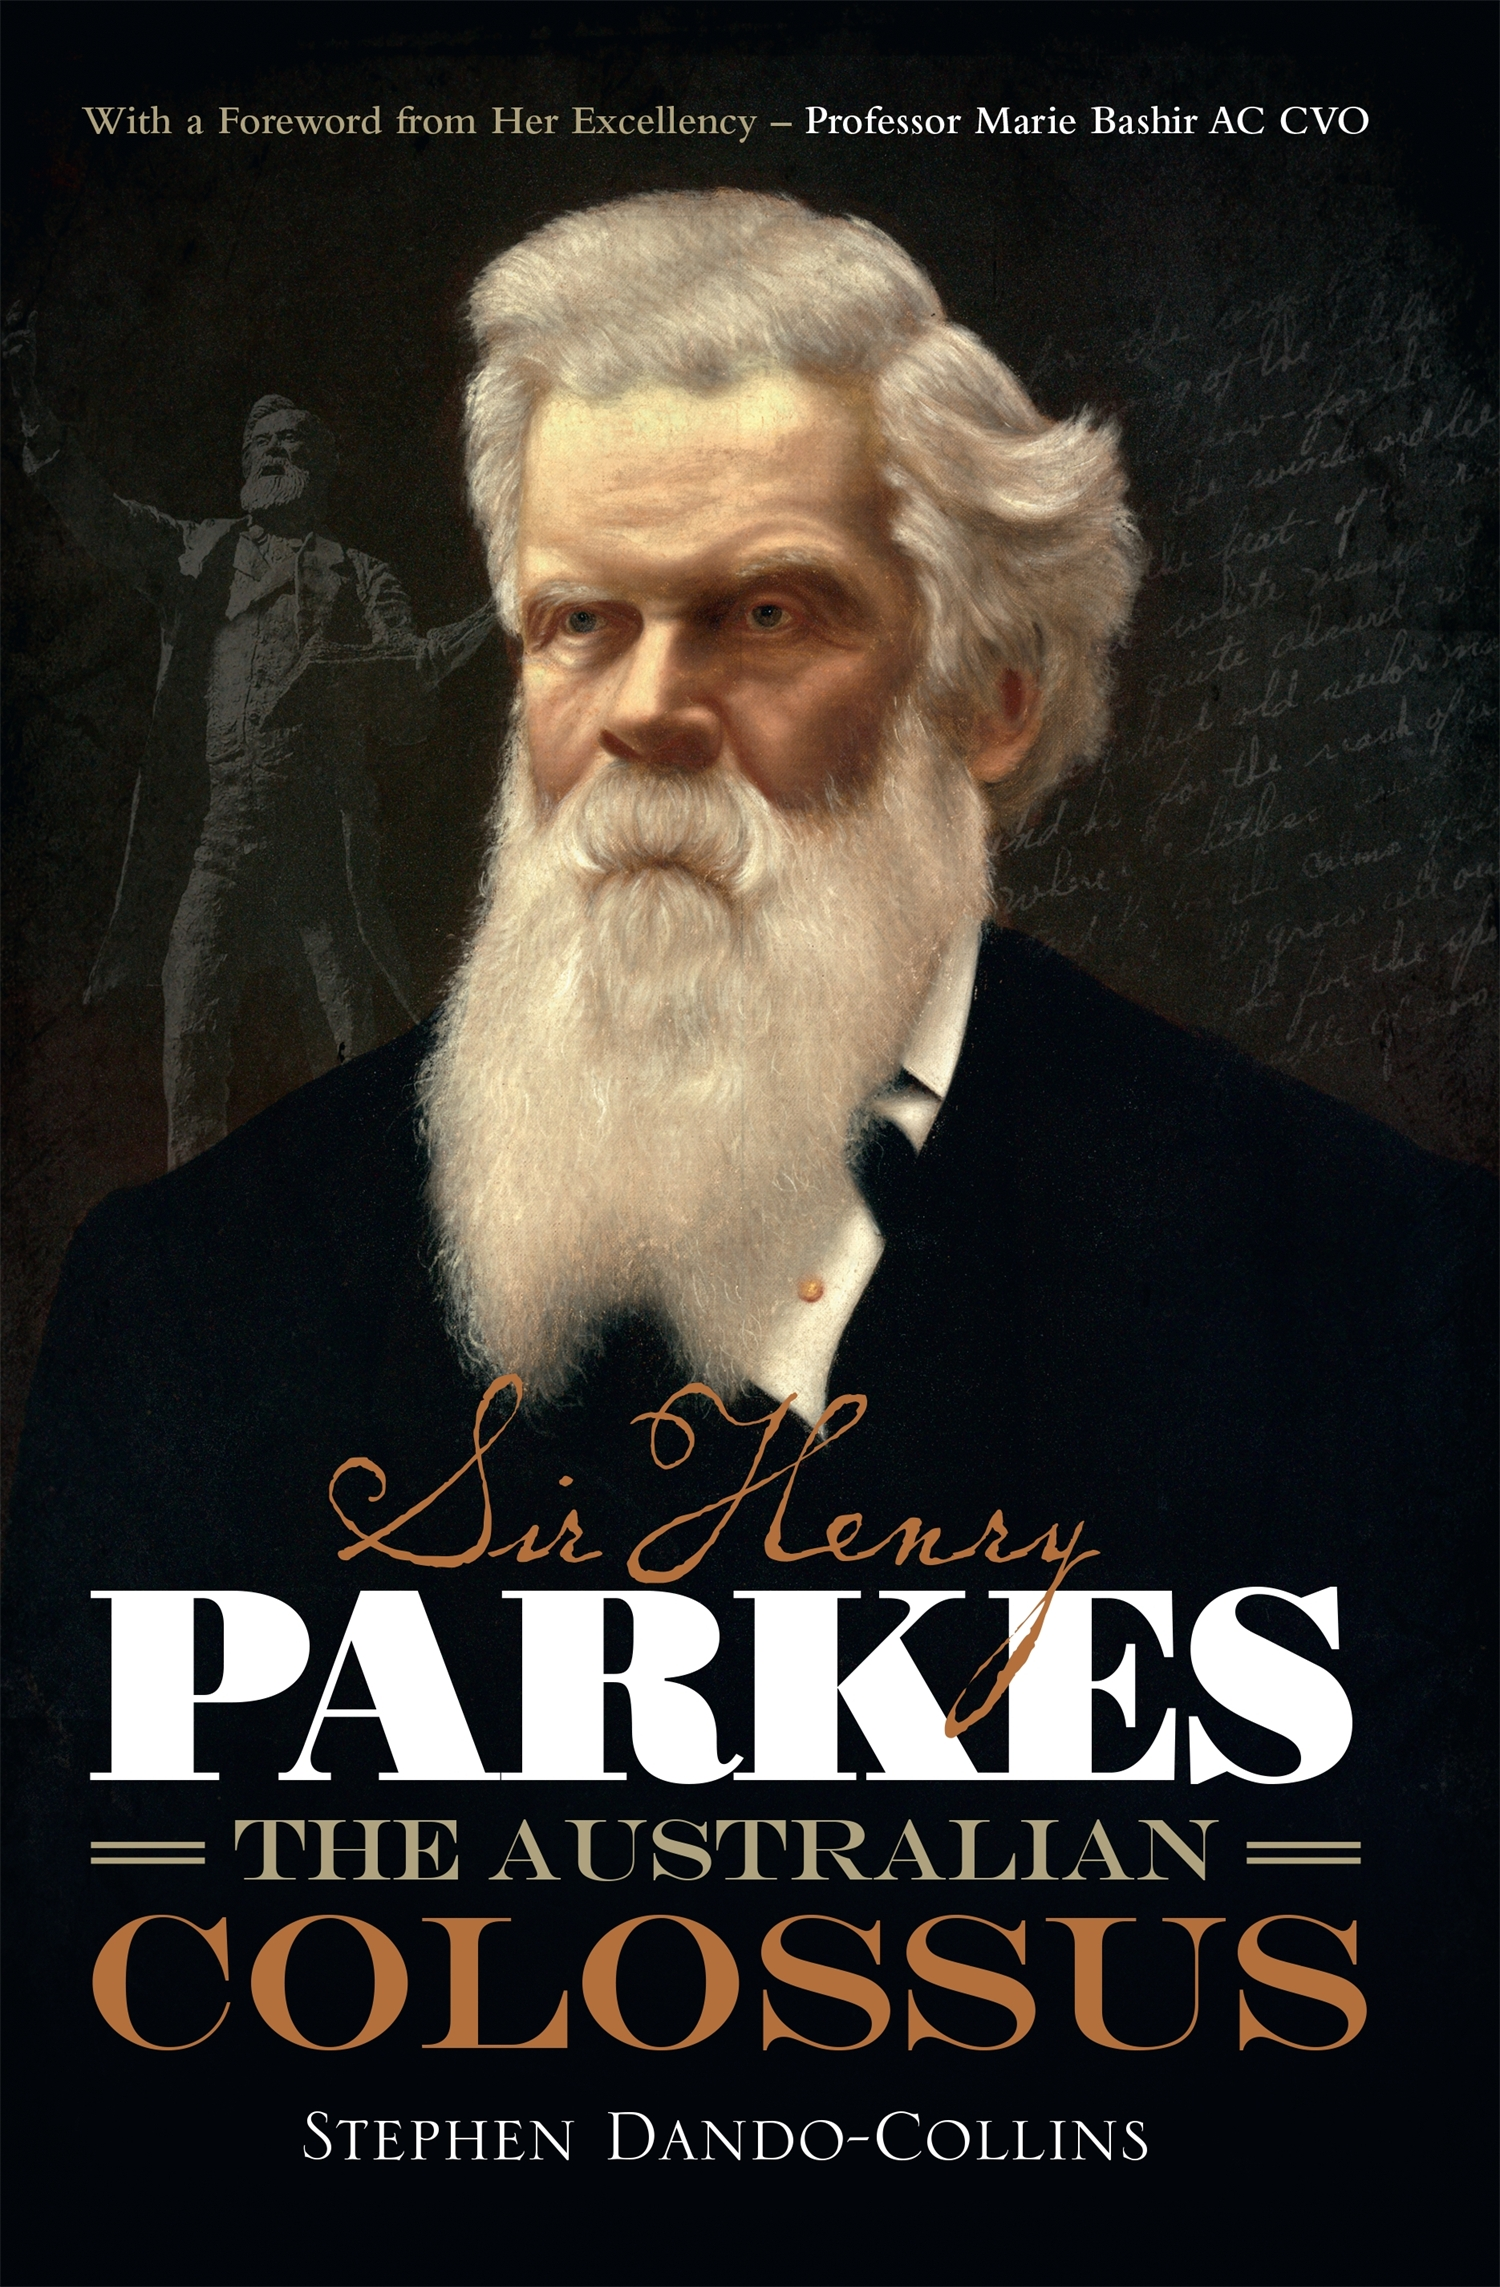 Sir Henry Parkes by Stephen Dando-Collins Click on the image for a free extract of the book.